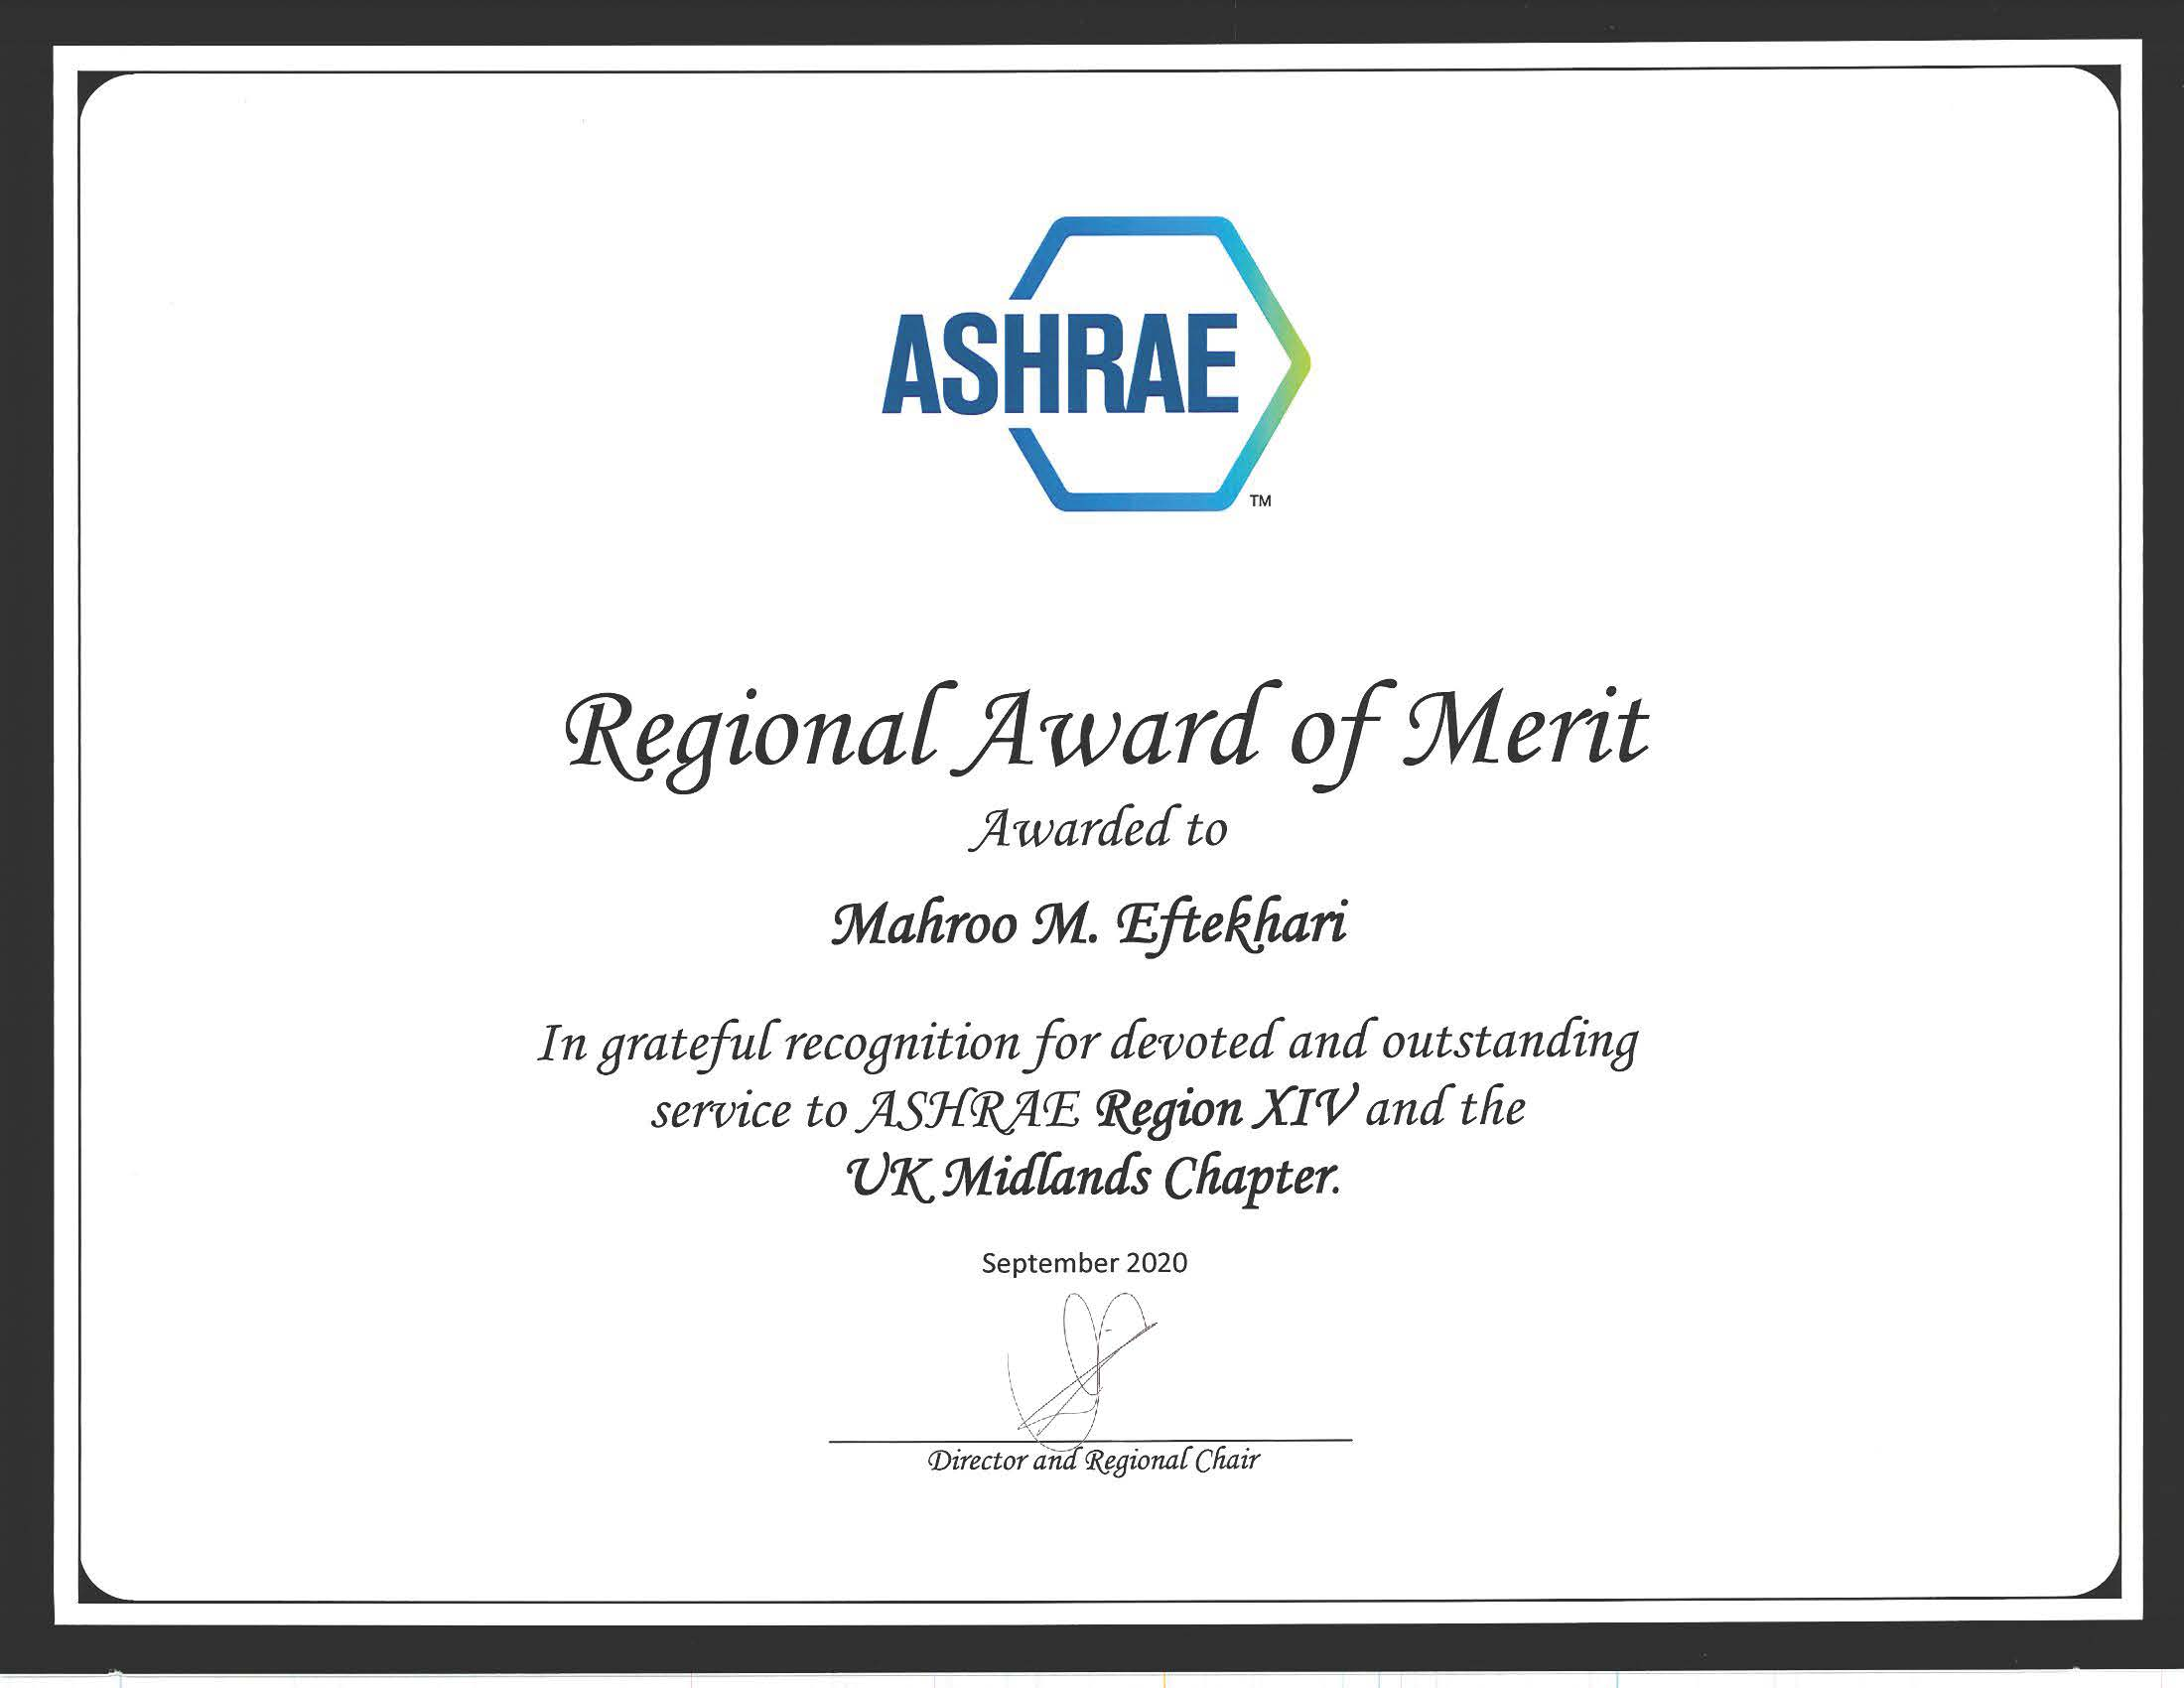 Regional Award of Merit awarded to Dr.Mahroo Eftekahri